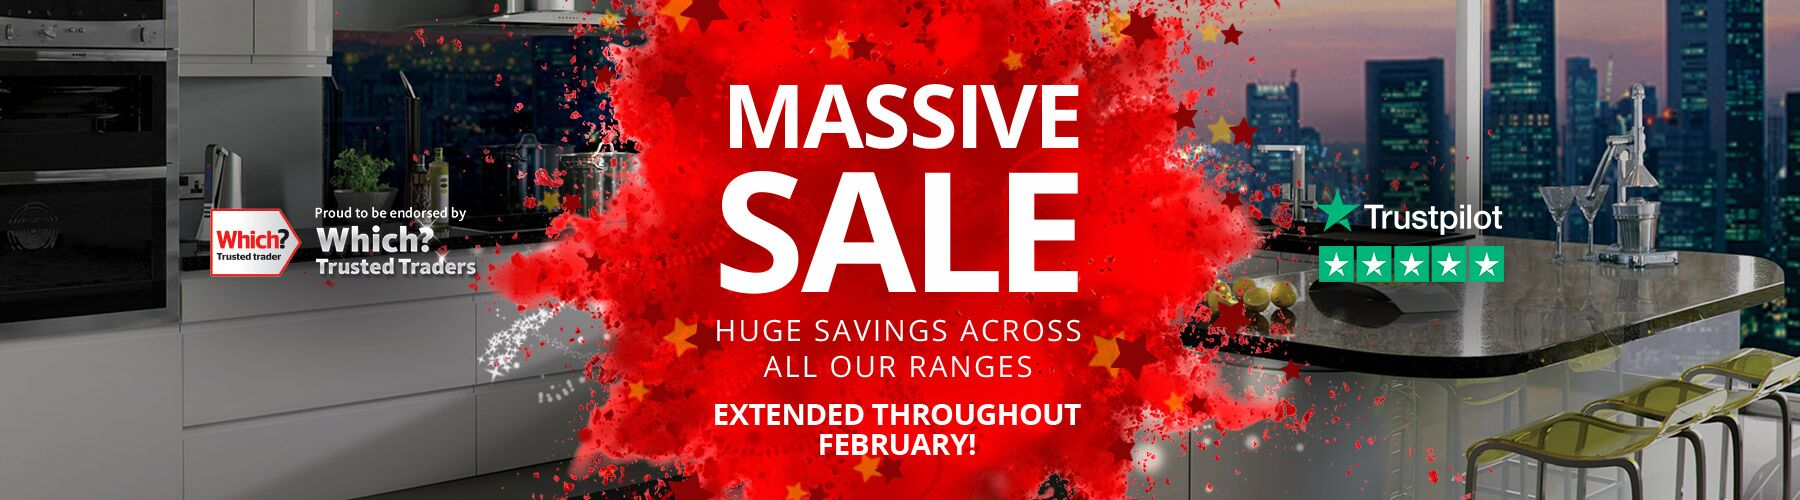 Extended February Sale